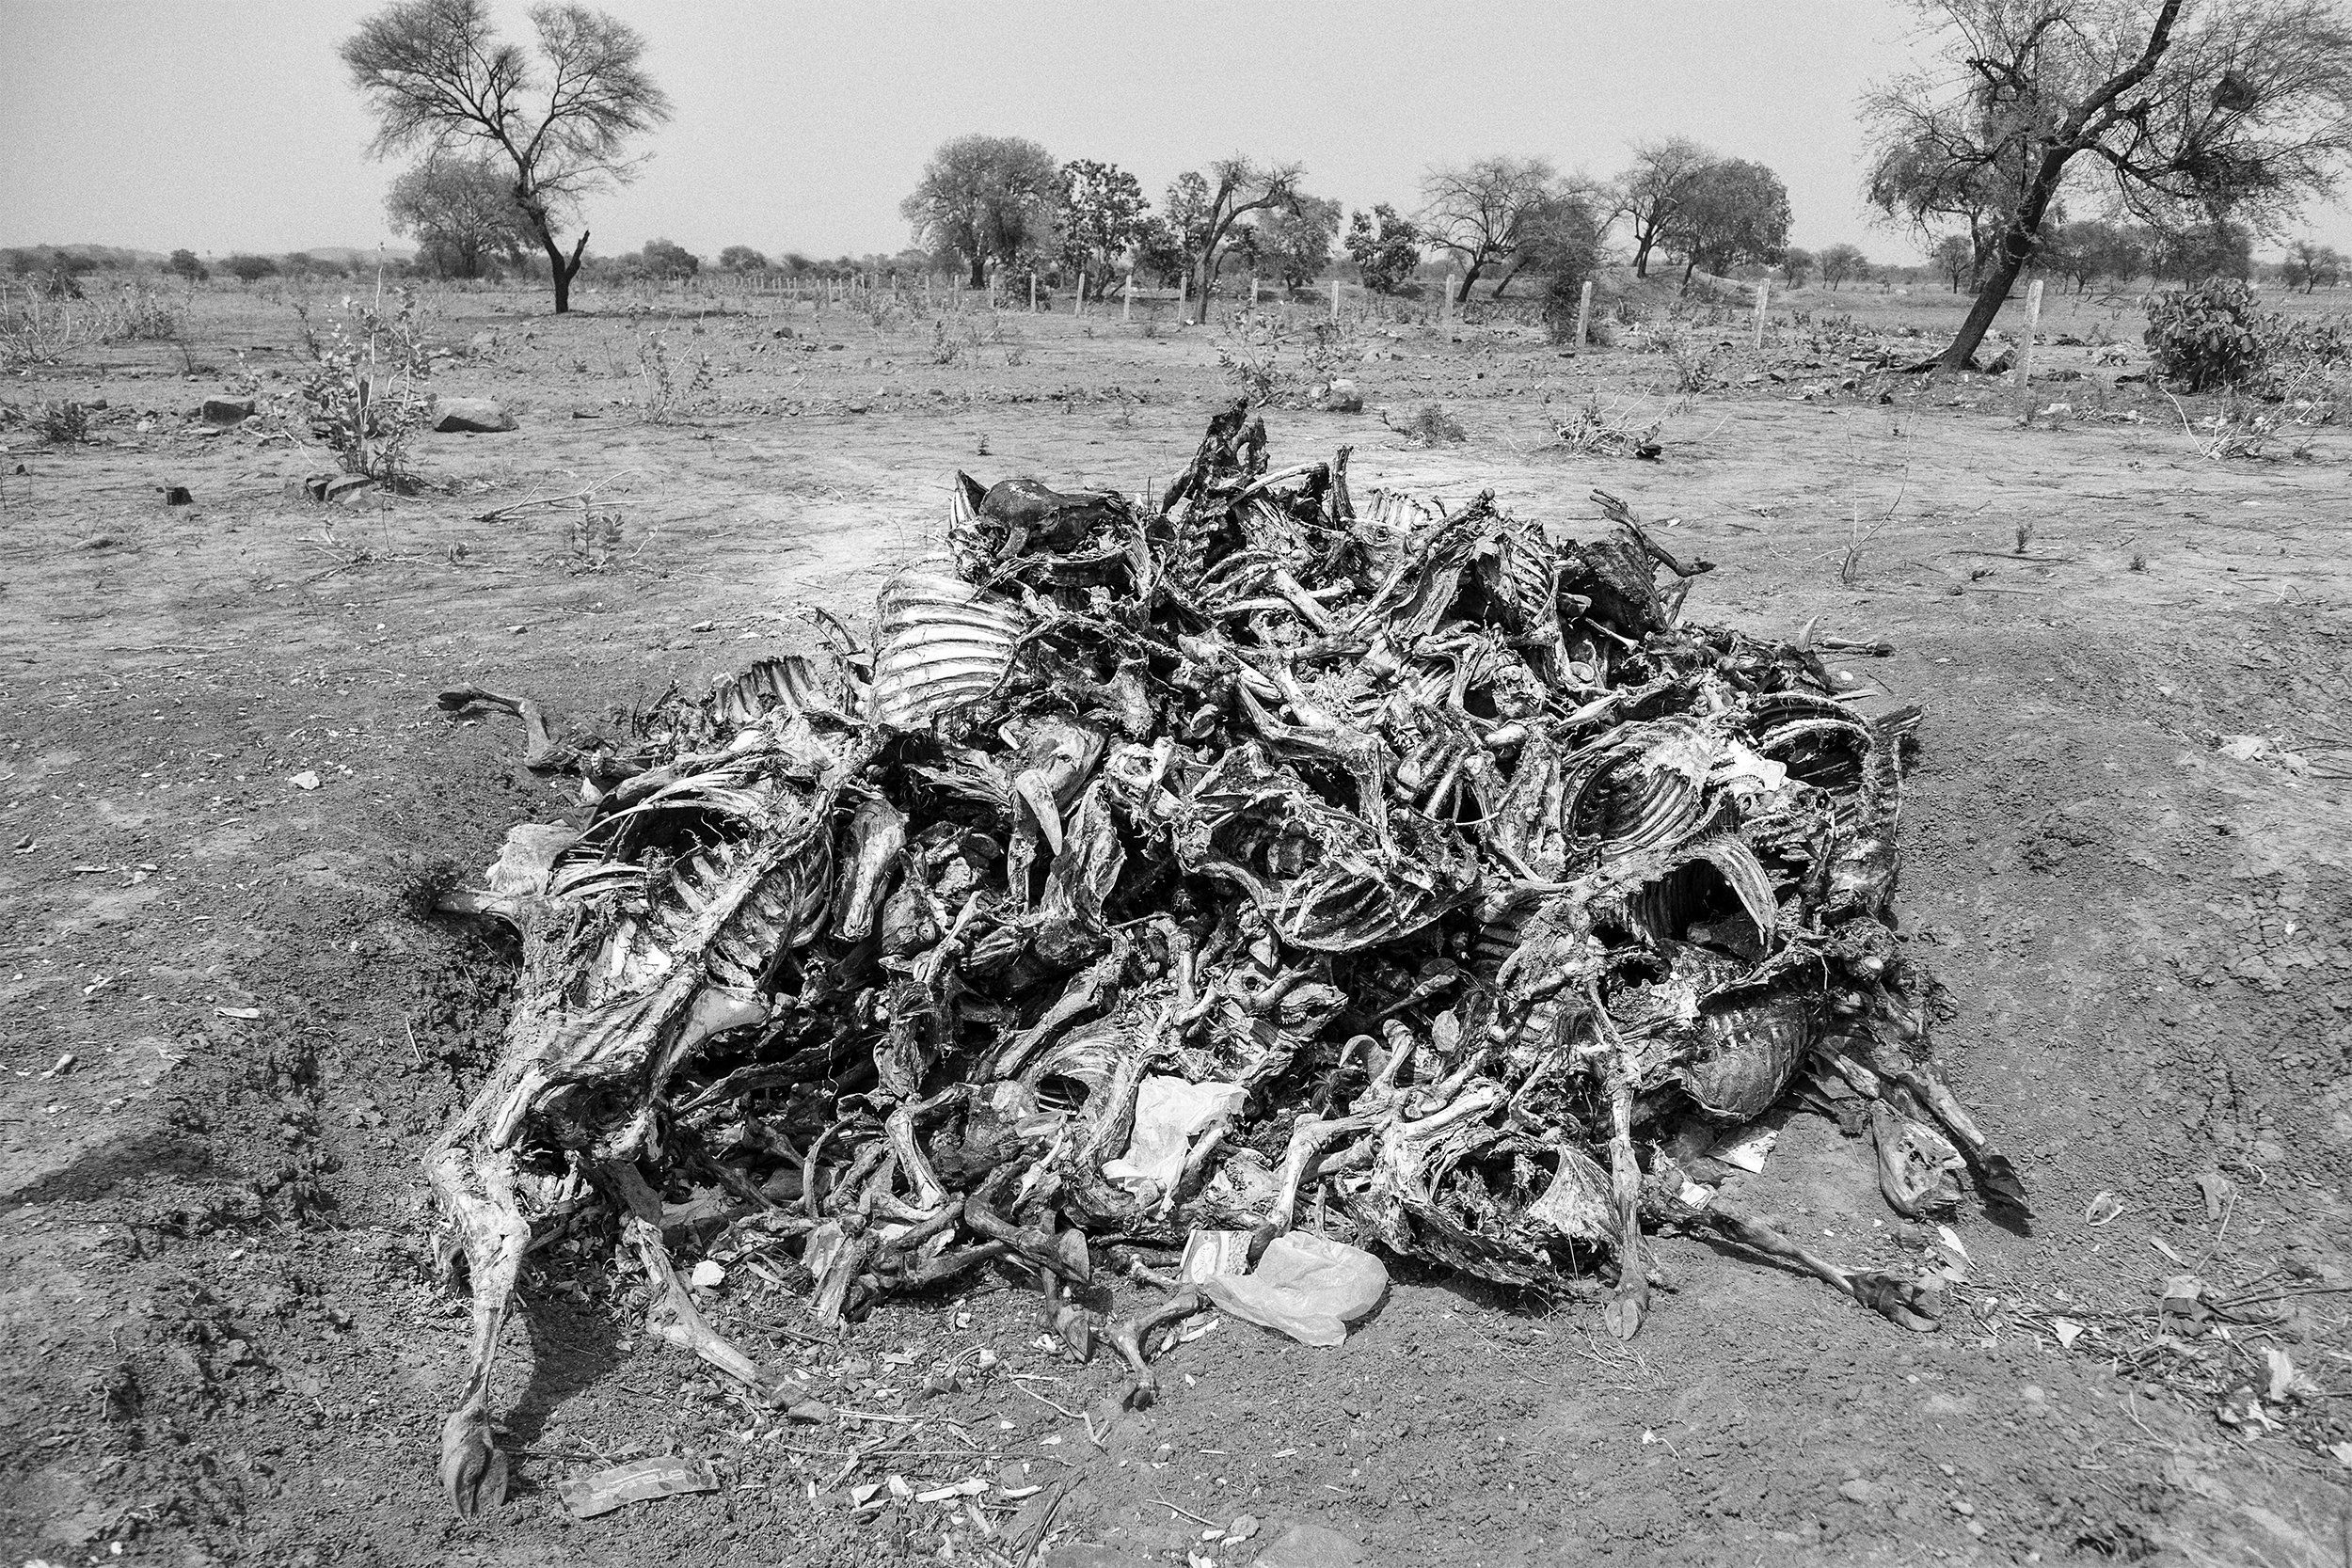 Piles of livestock carcasses are a common sight across the parched landscape in Bundelkhand.